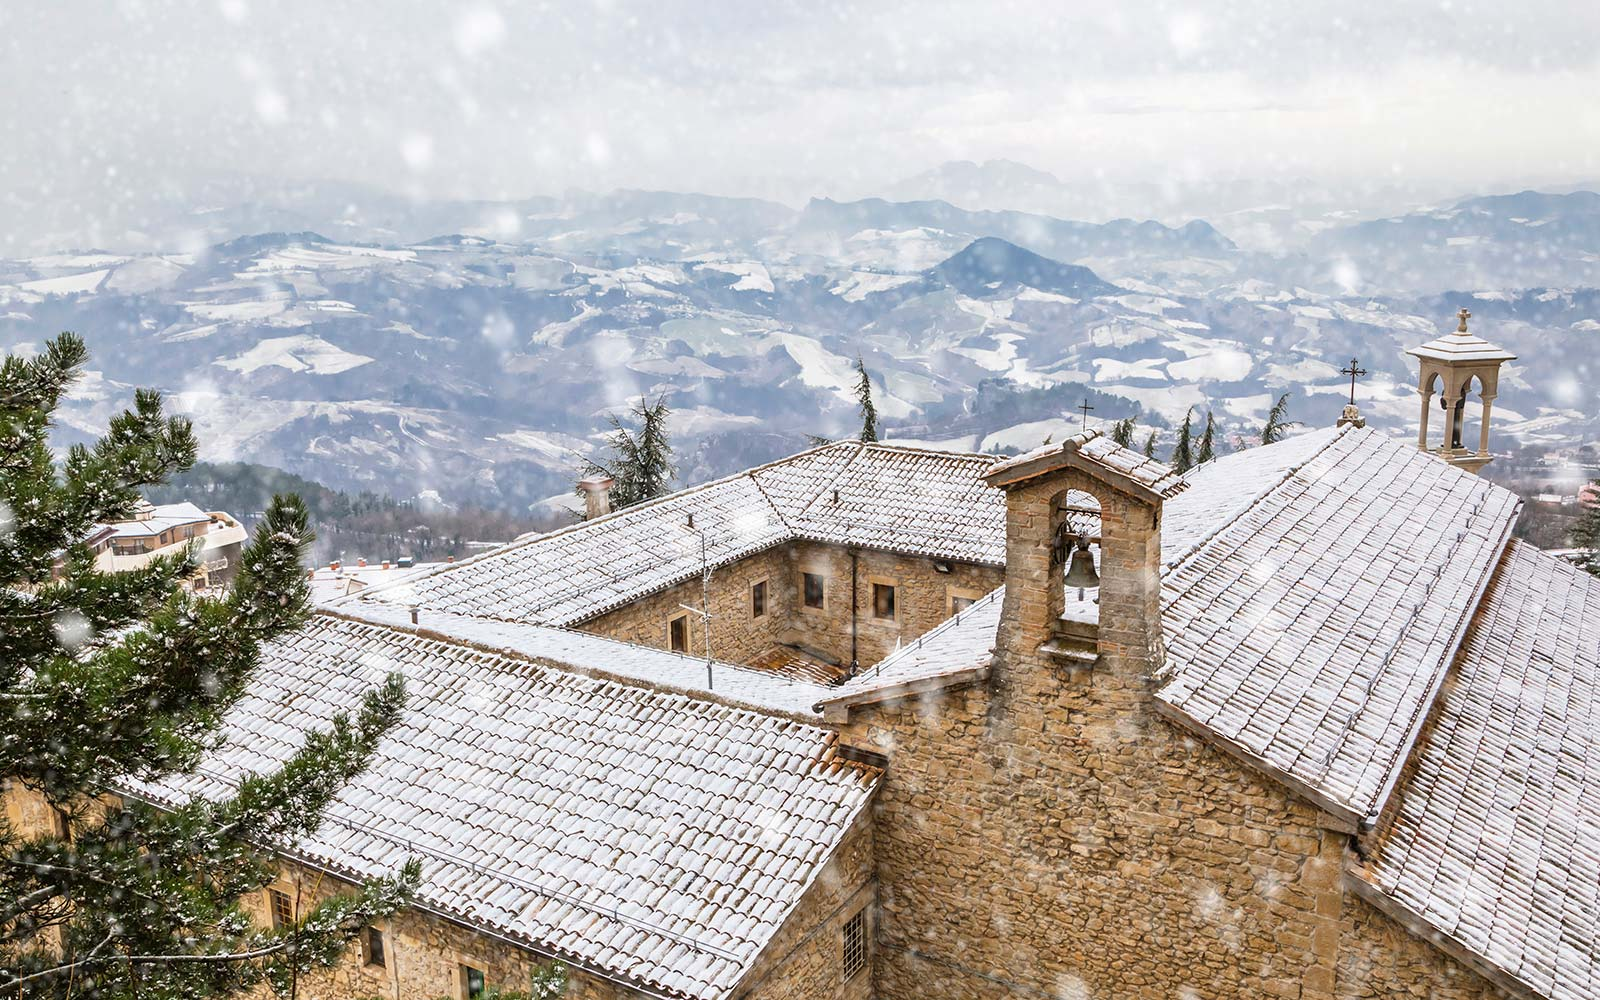 View from San Marino, Europe winter snow